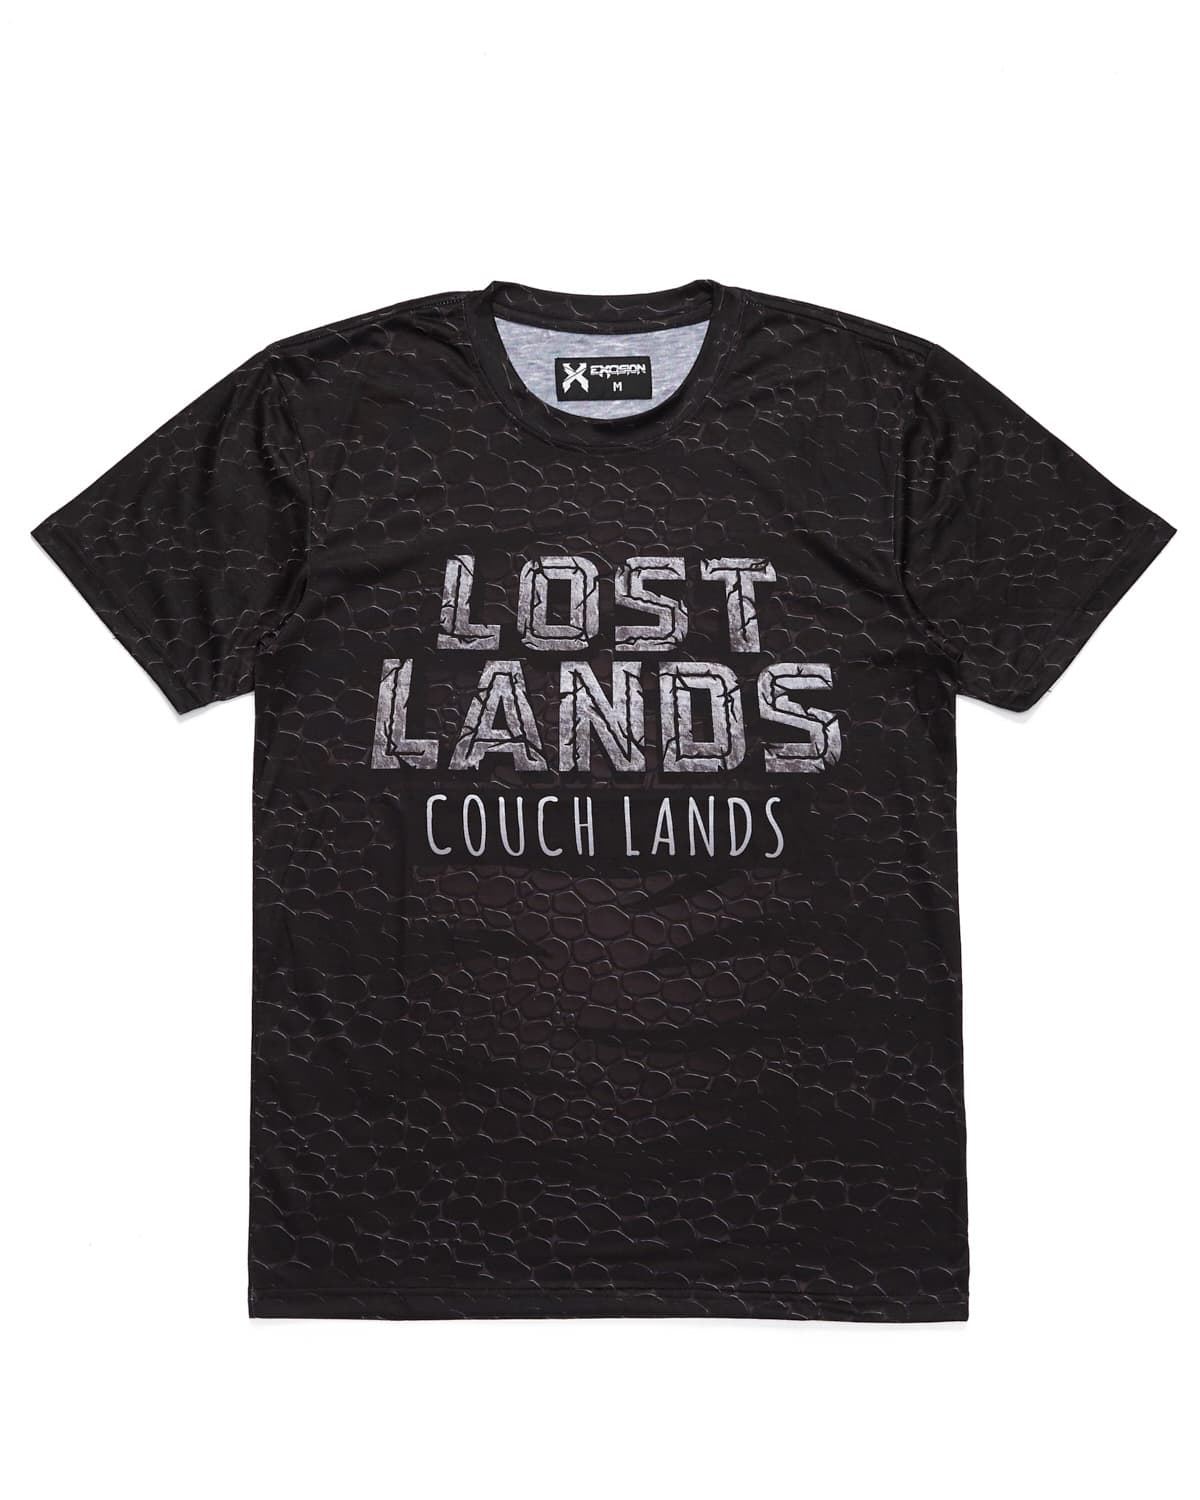 'Couch Lands' Dye Sub Tee - Black